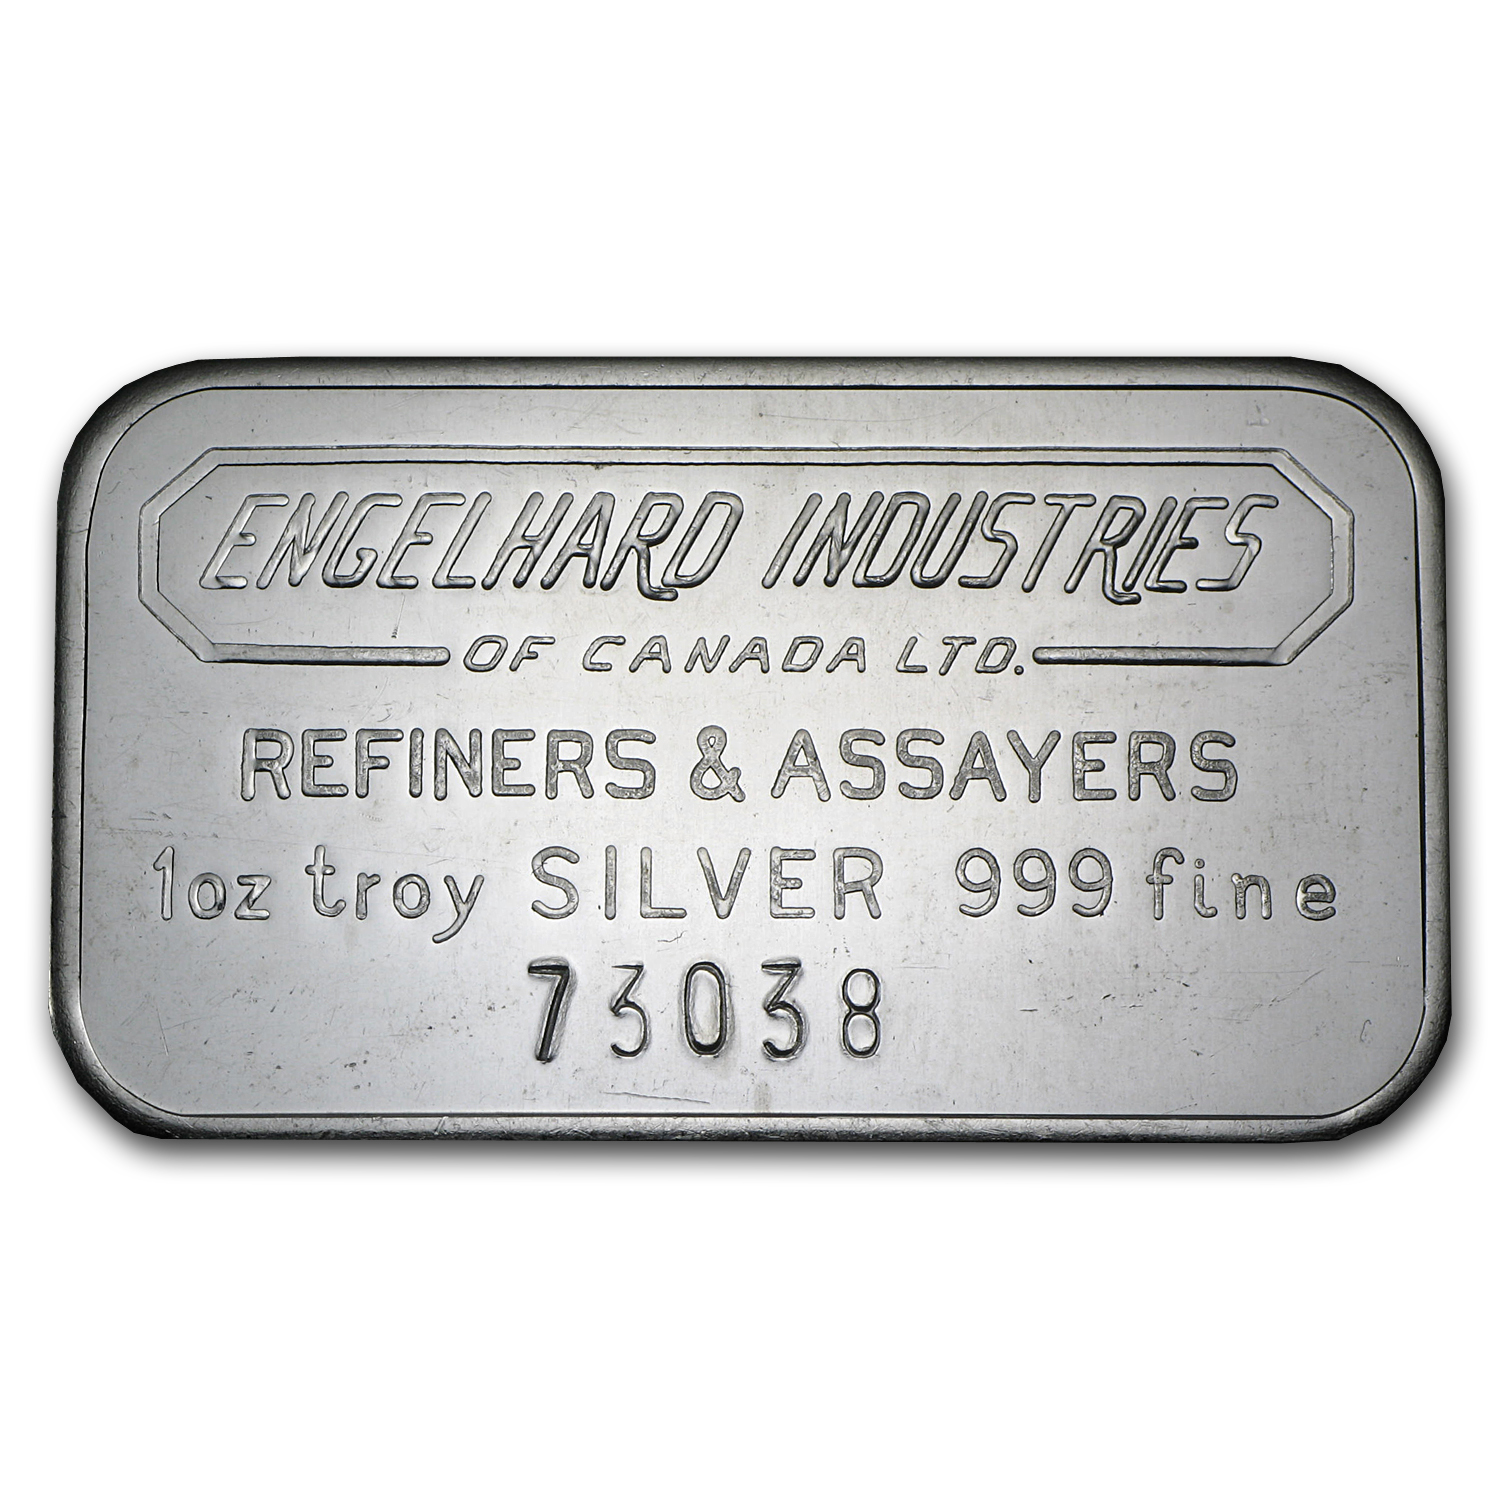 1 oz Silver Bar - Engelhard Industries of Canada (Wide, 5-digit)